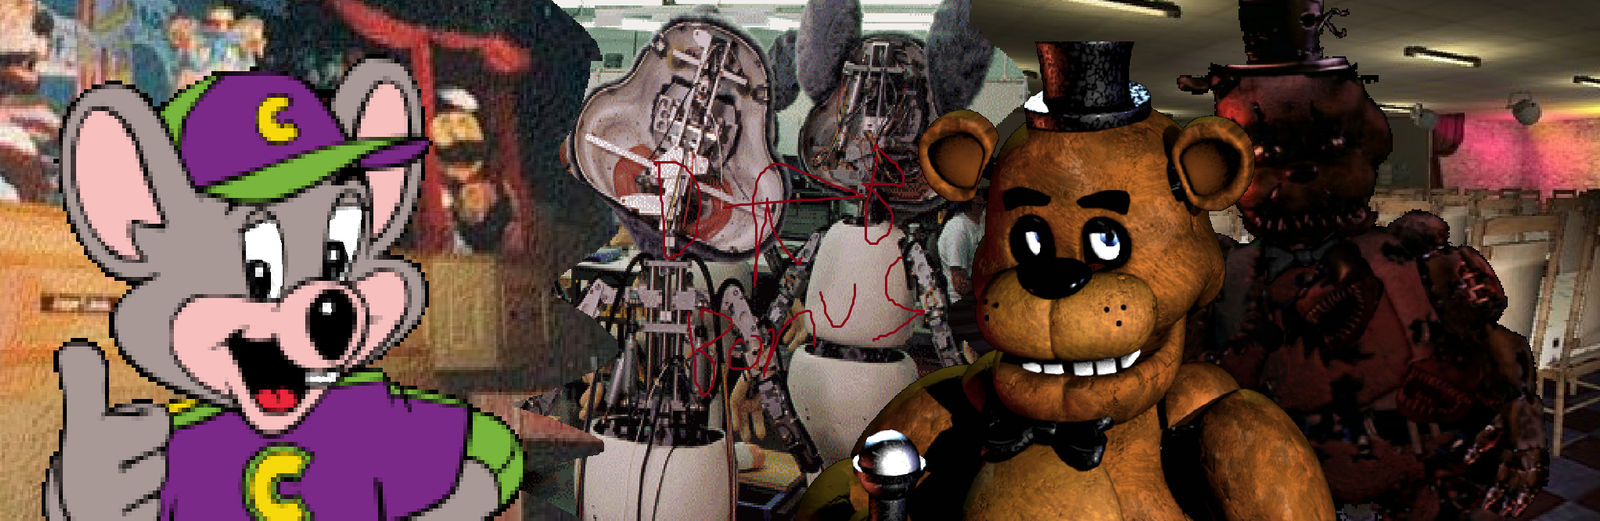 Mr Nightmare Chuck E Cheese : Cheese news stories that seem like a recreation of the first fnaf game in real life, but not all is as it seems.